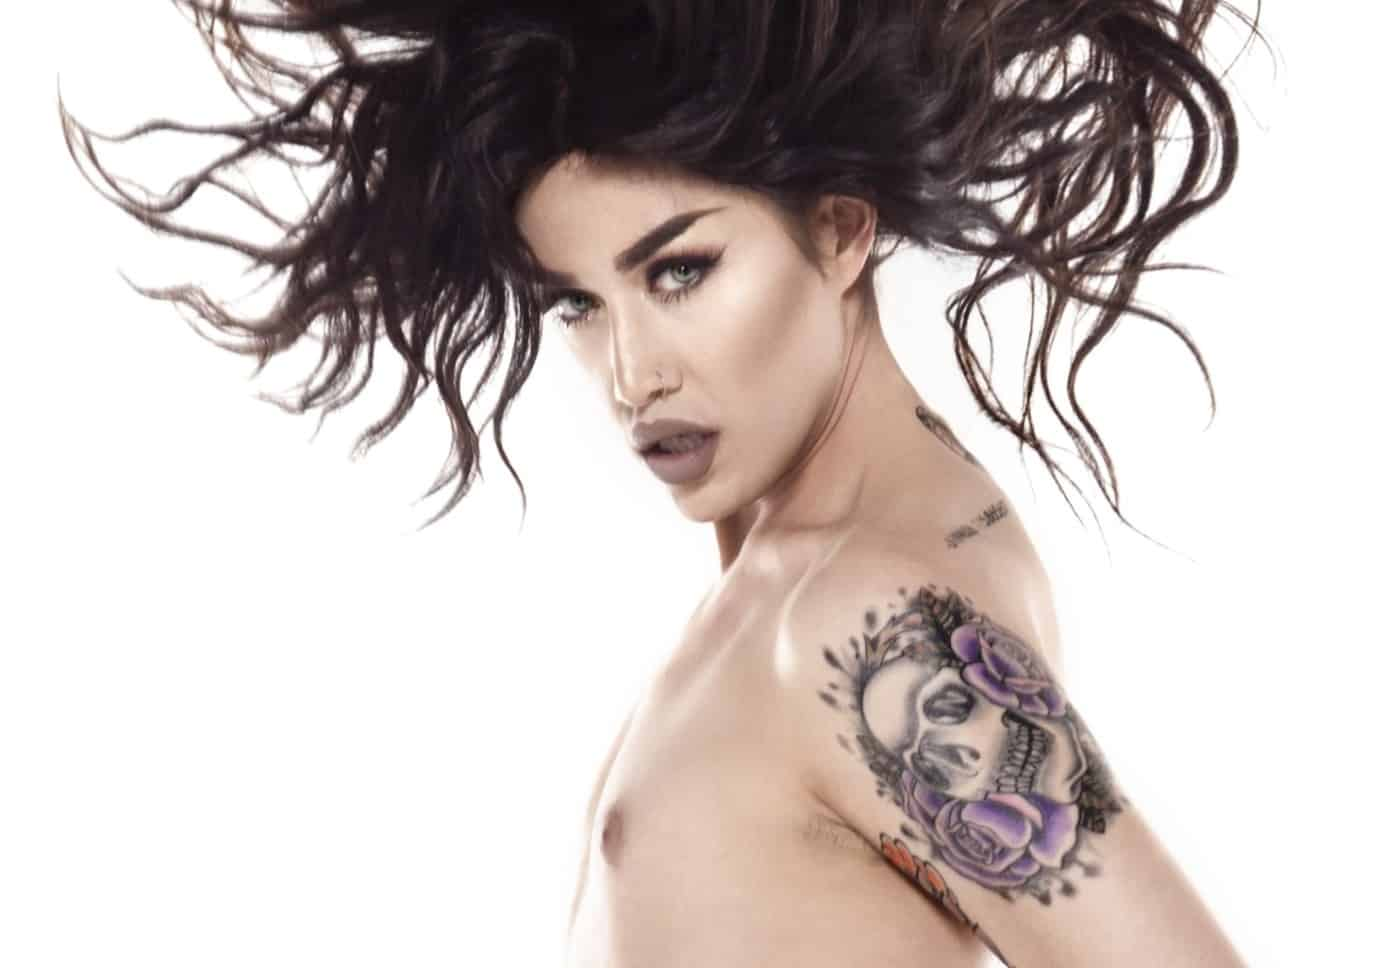 Adore Delano, cropped, web, pc @adbimagery